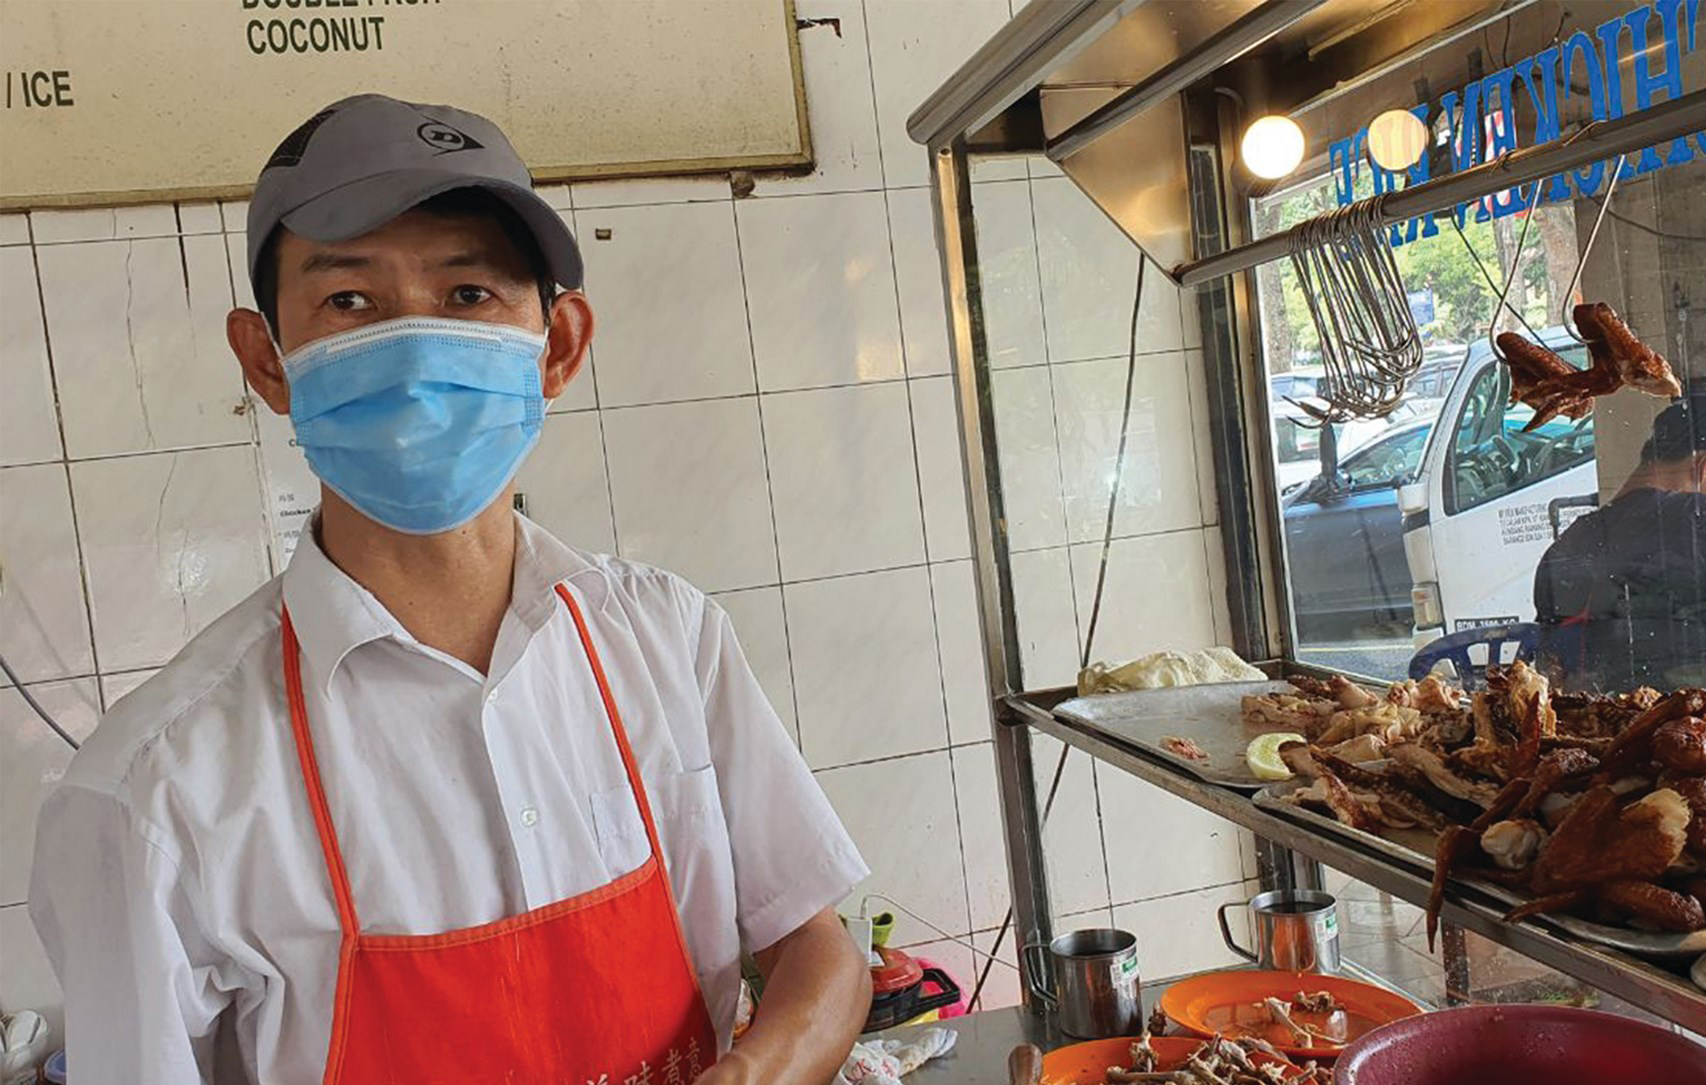 He has been operating the Chuan Kee chicken rice stall in USJ 4 for the last 20 years.